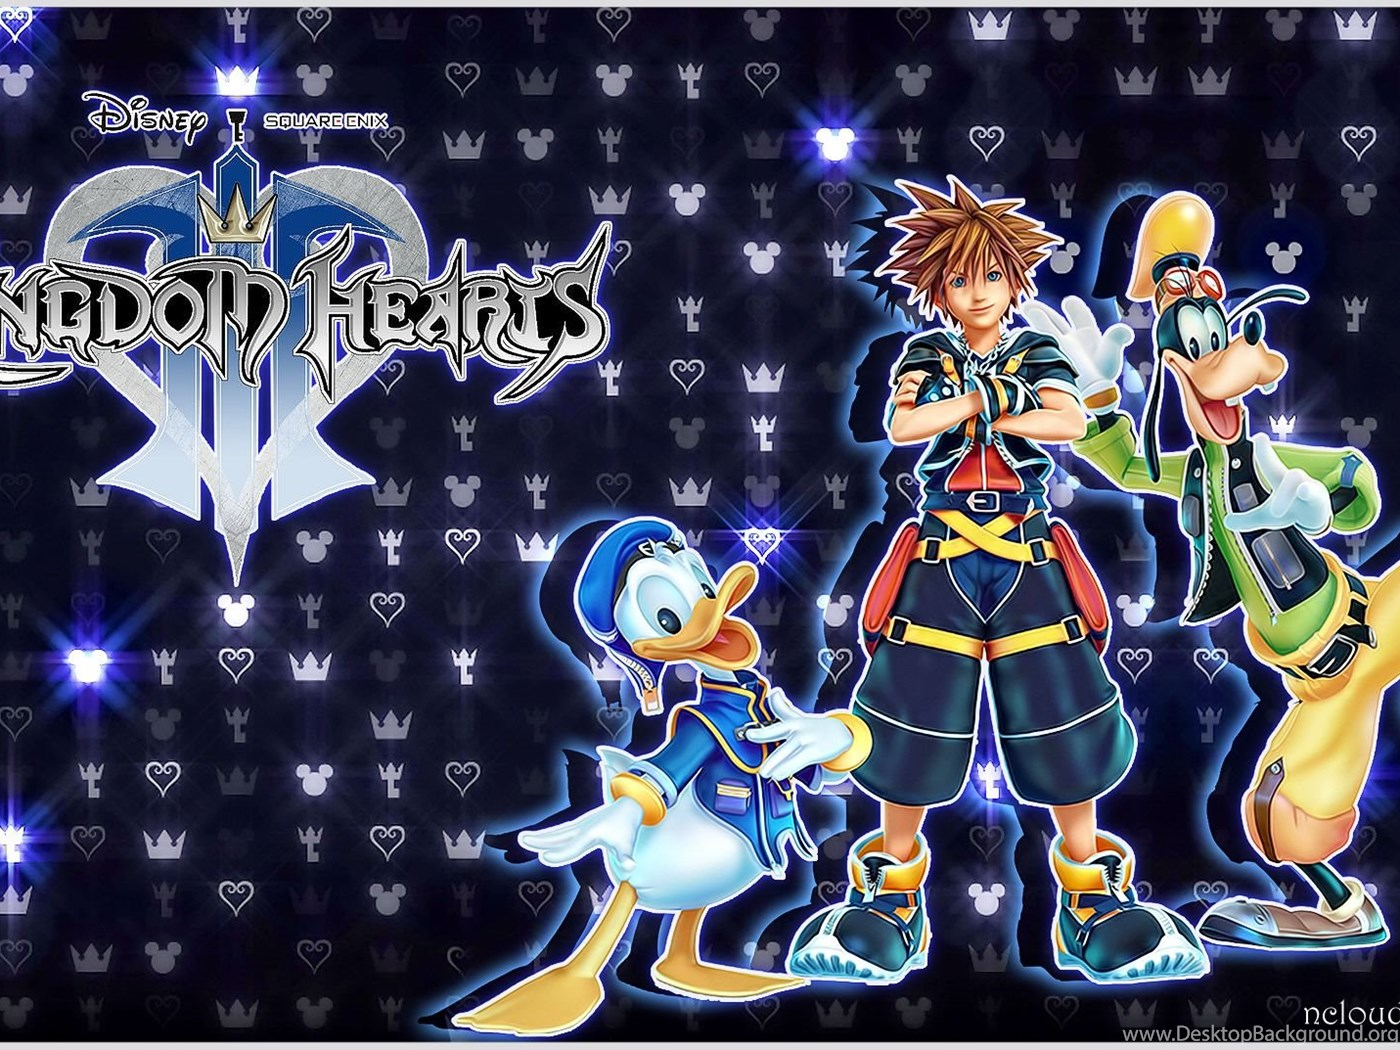 Games Movies Music Anime My Kingdom Hearts 3 Wallpapers 2 Desktop